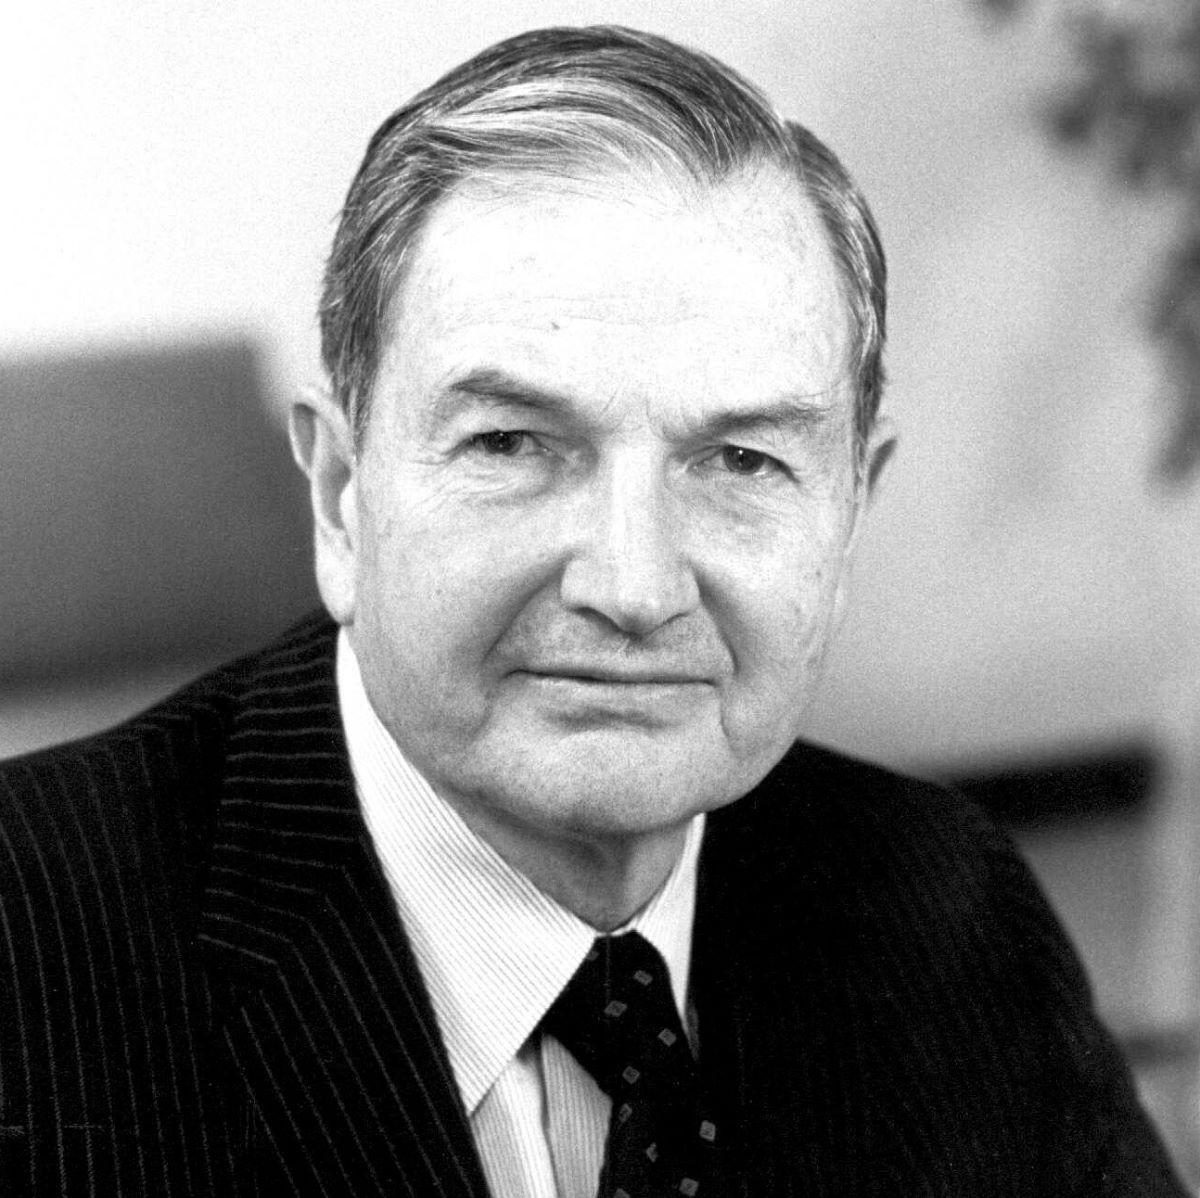 Banker and philanthropist David Rockefeller dies at 101